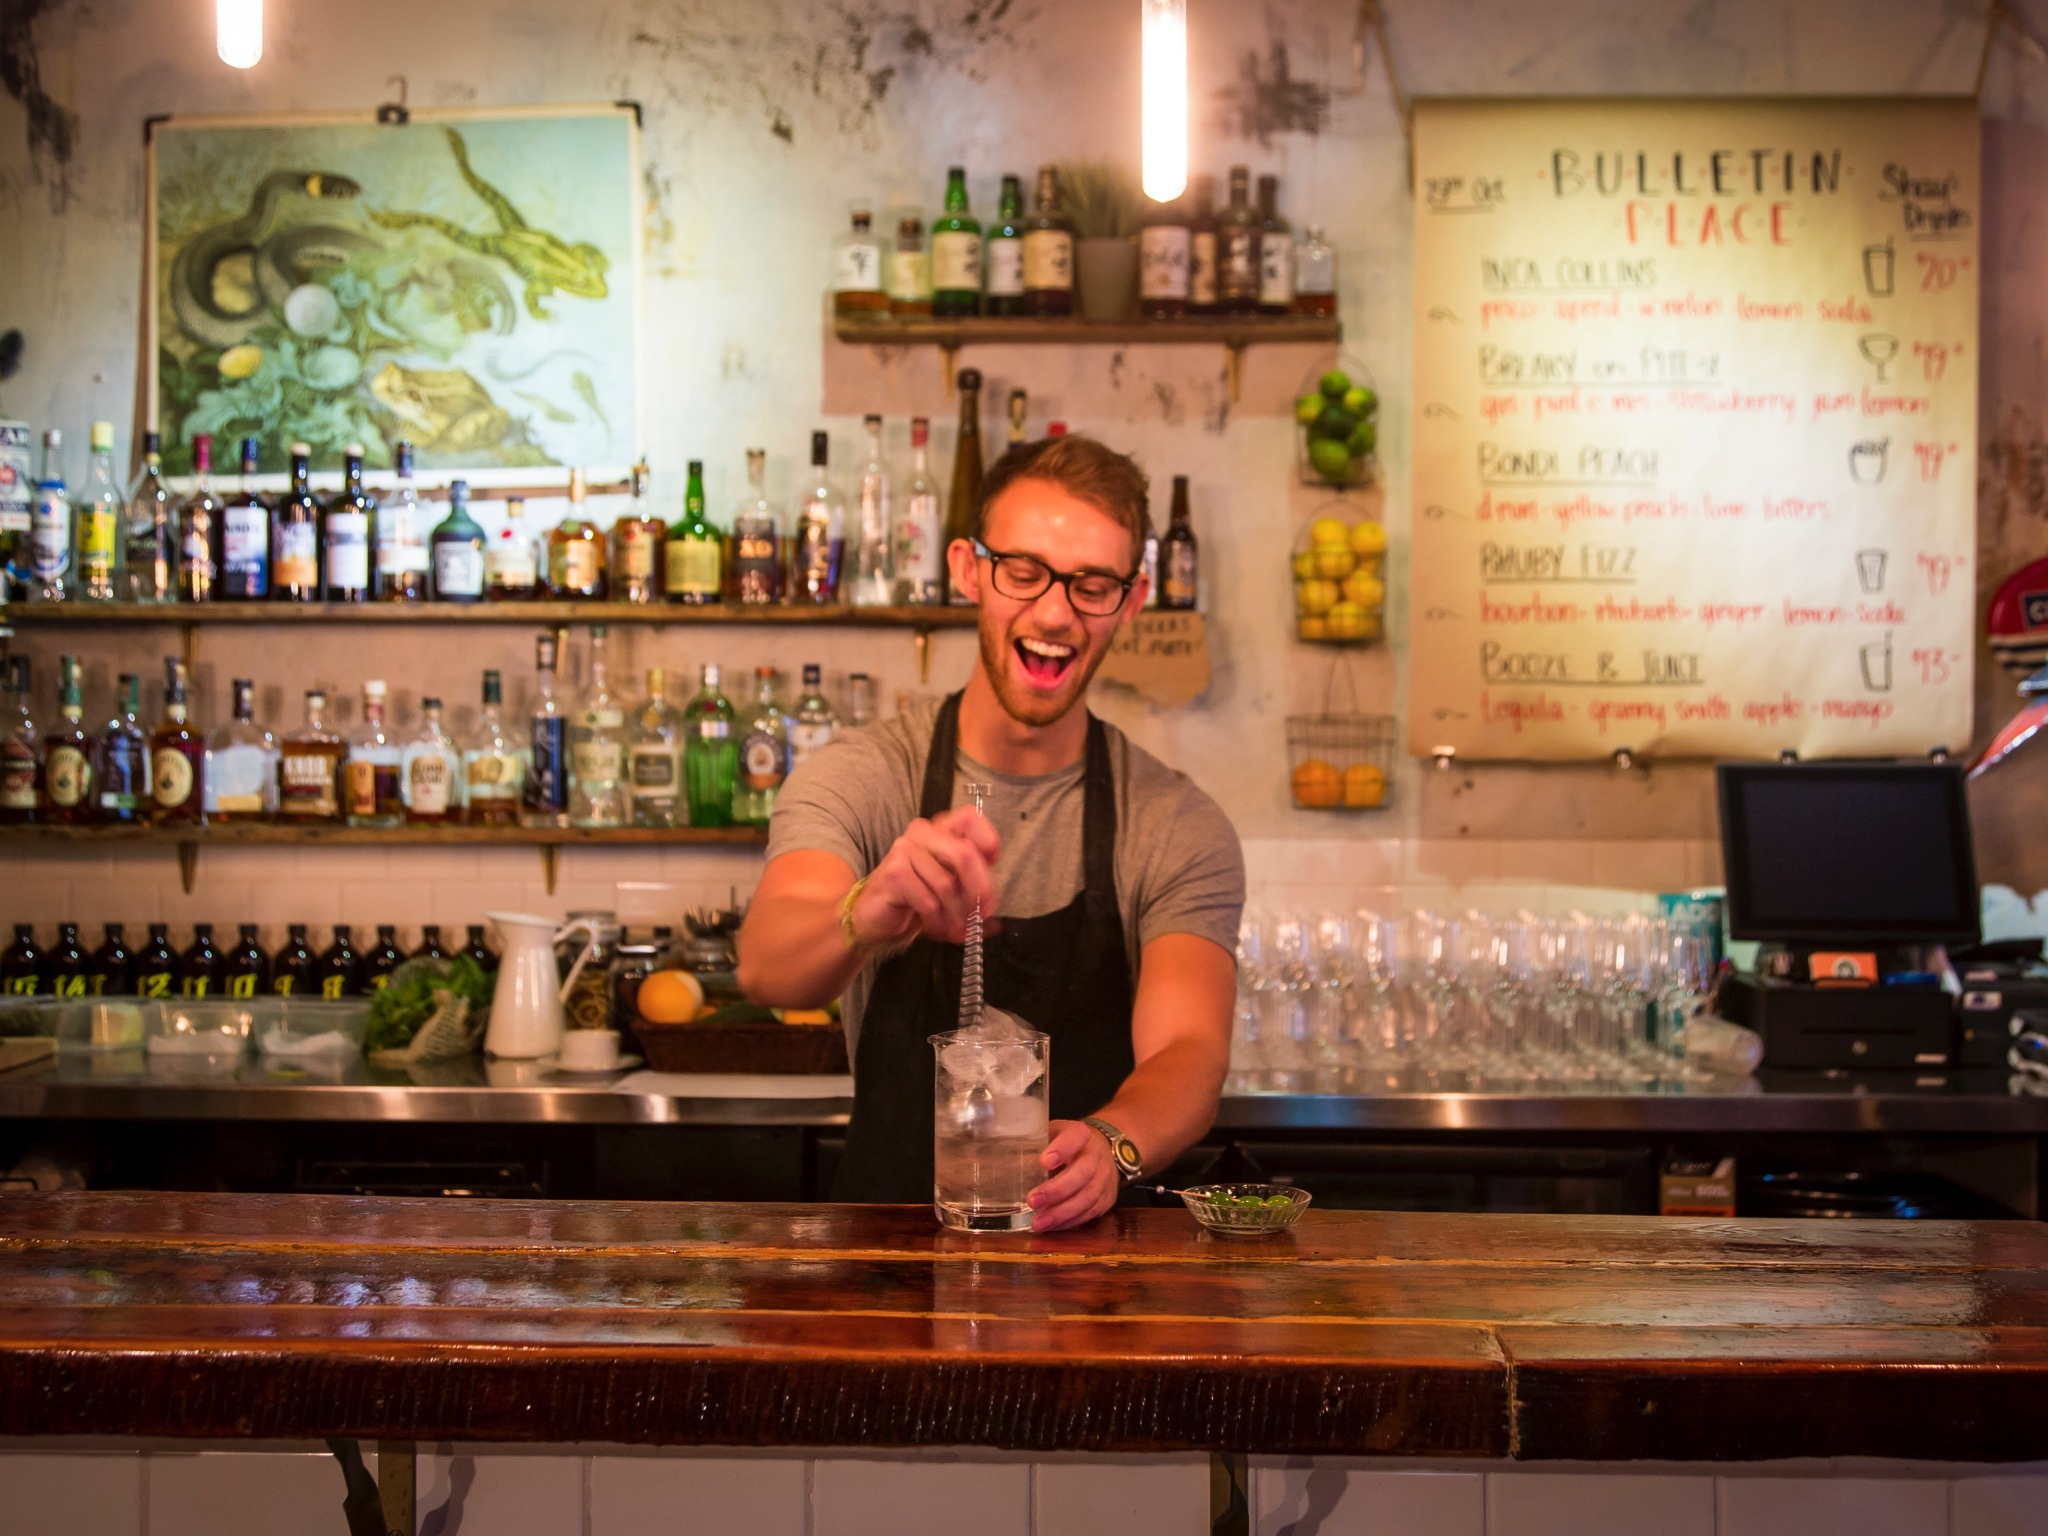 A bartender smiling behind the bar at Bulletin Place stiring a c